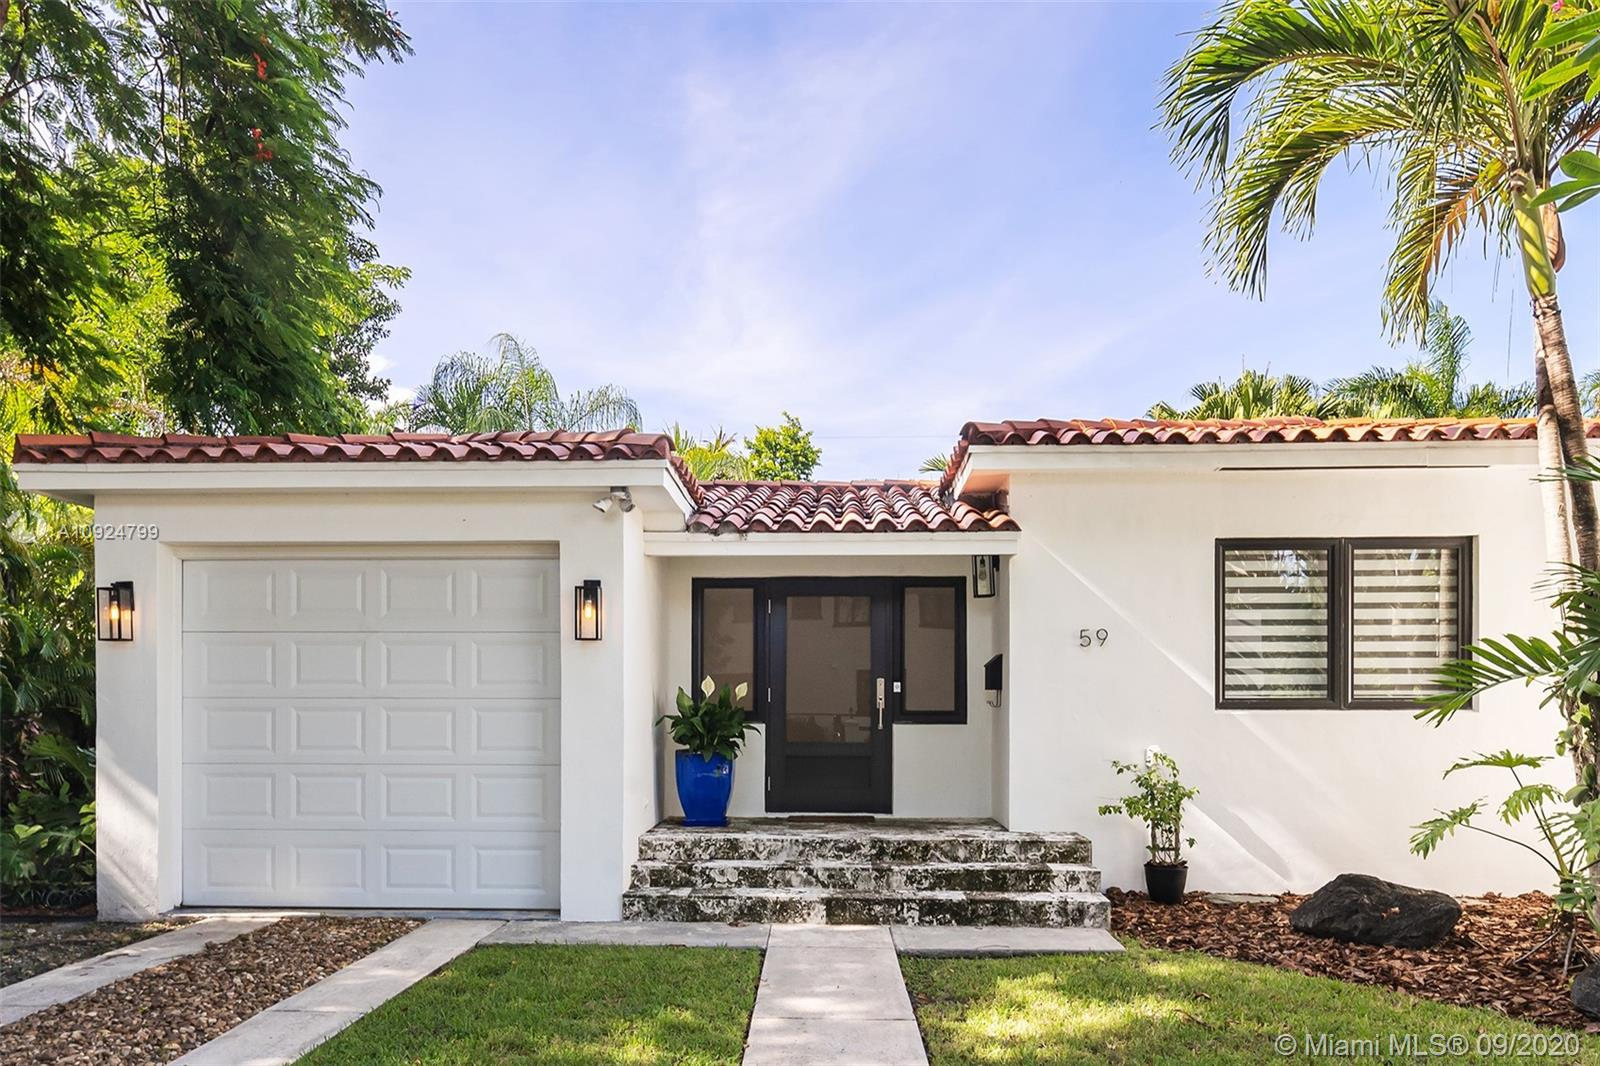 Details for 59 Romano Ave, Coral Gables, FL 33134